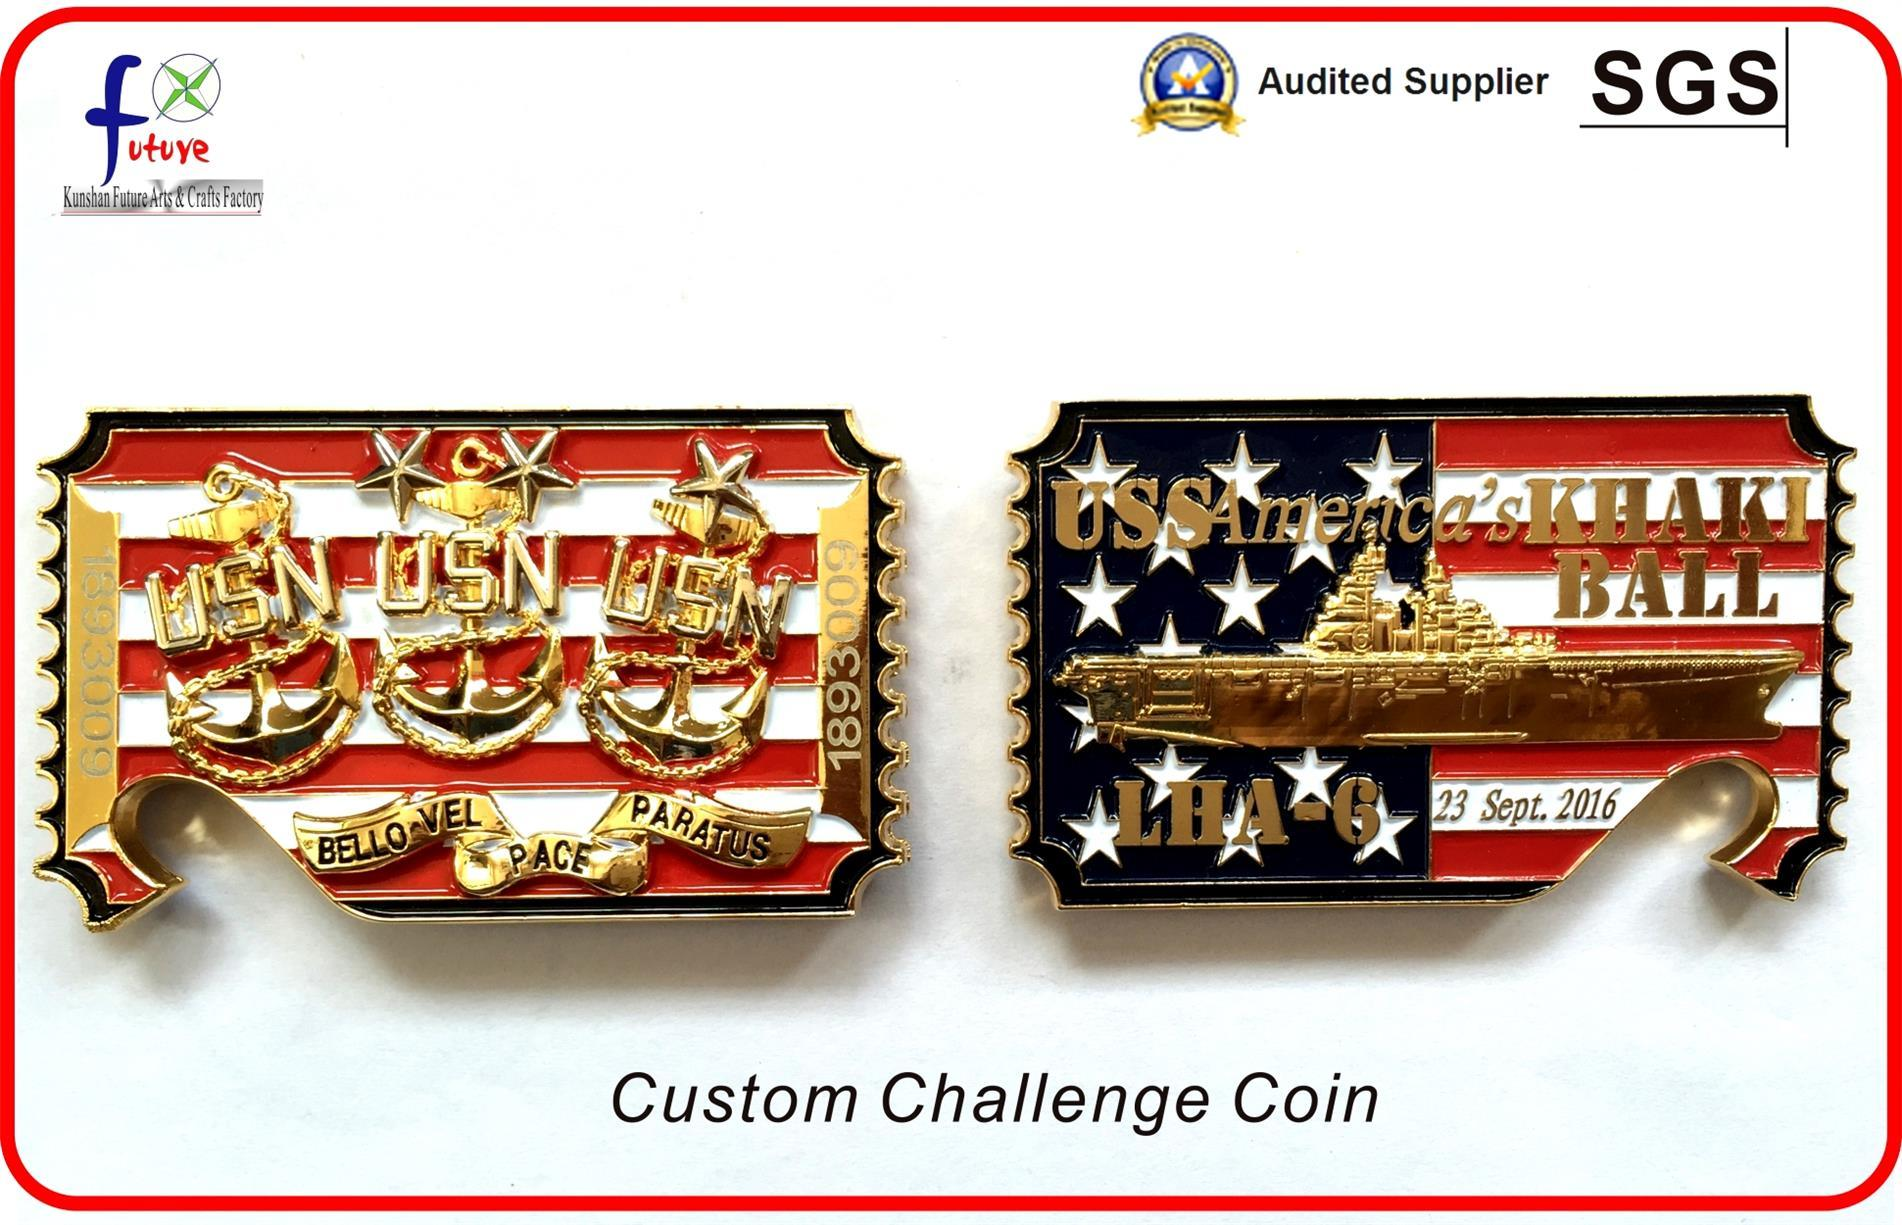 Custom Challenge Coin Usn Coin